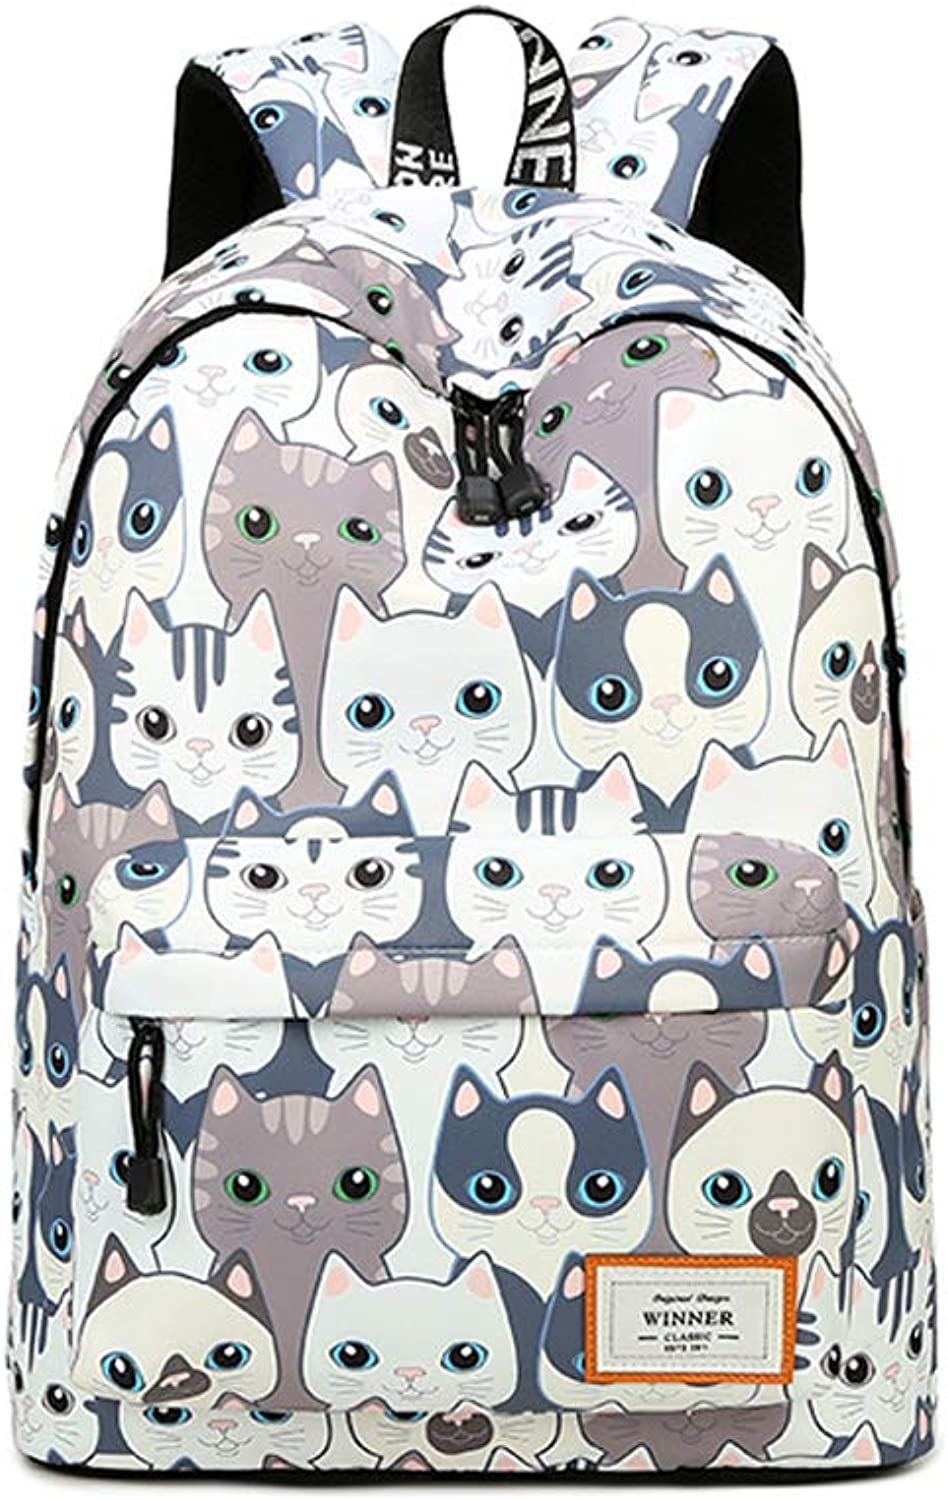 HLJ Personality Student Bag Fashion Large Capacity Travel Backpack Leisure Out Computer Bag (Size   40  30  13cm)